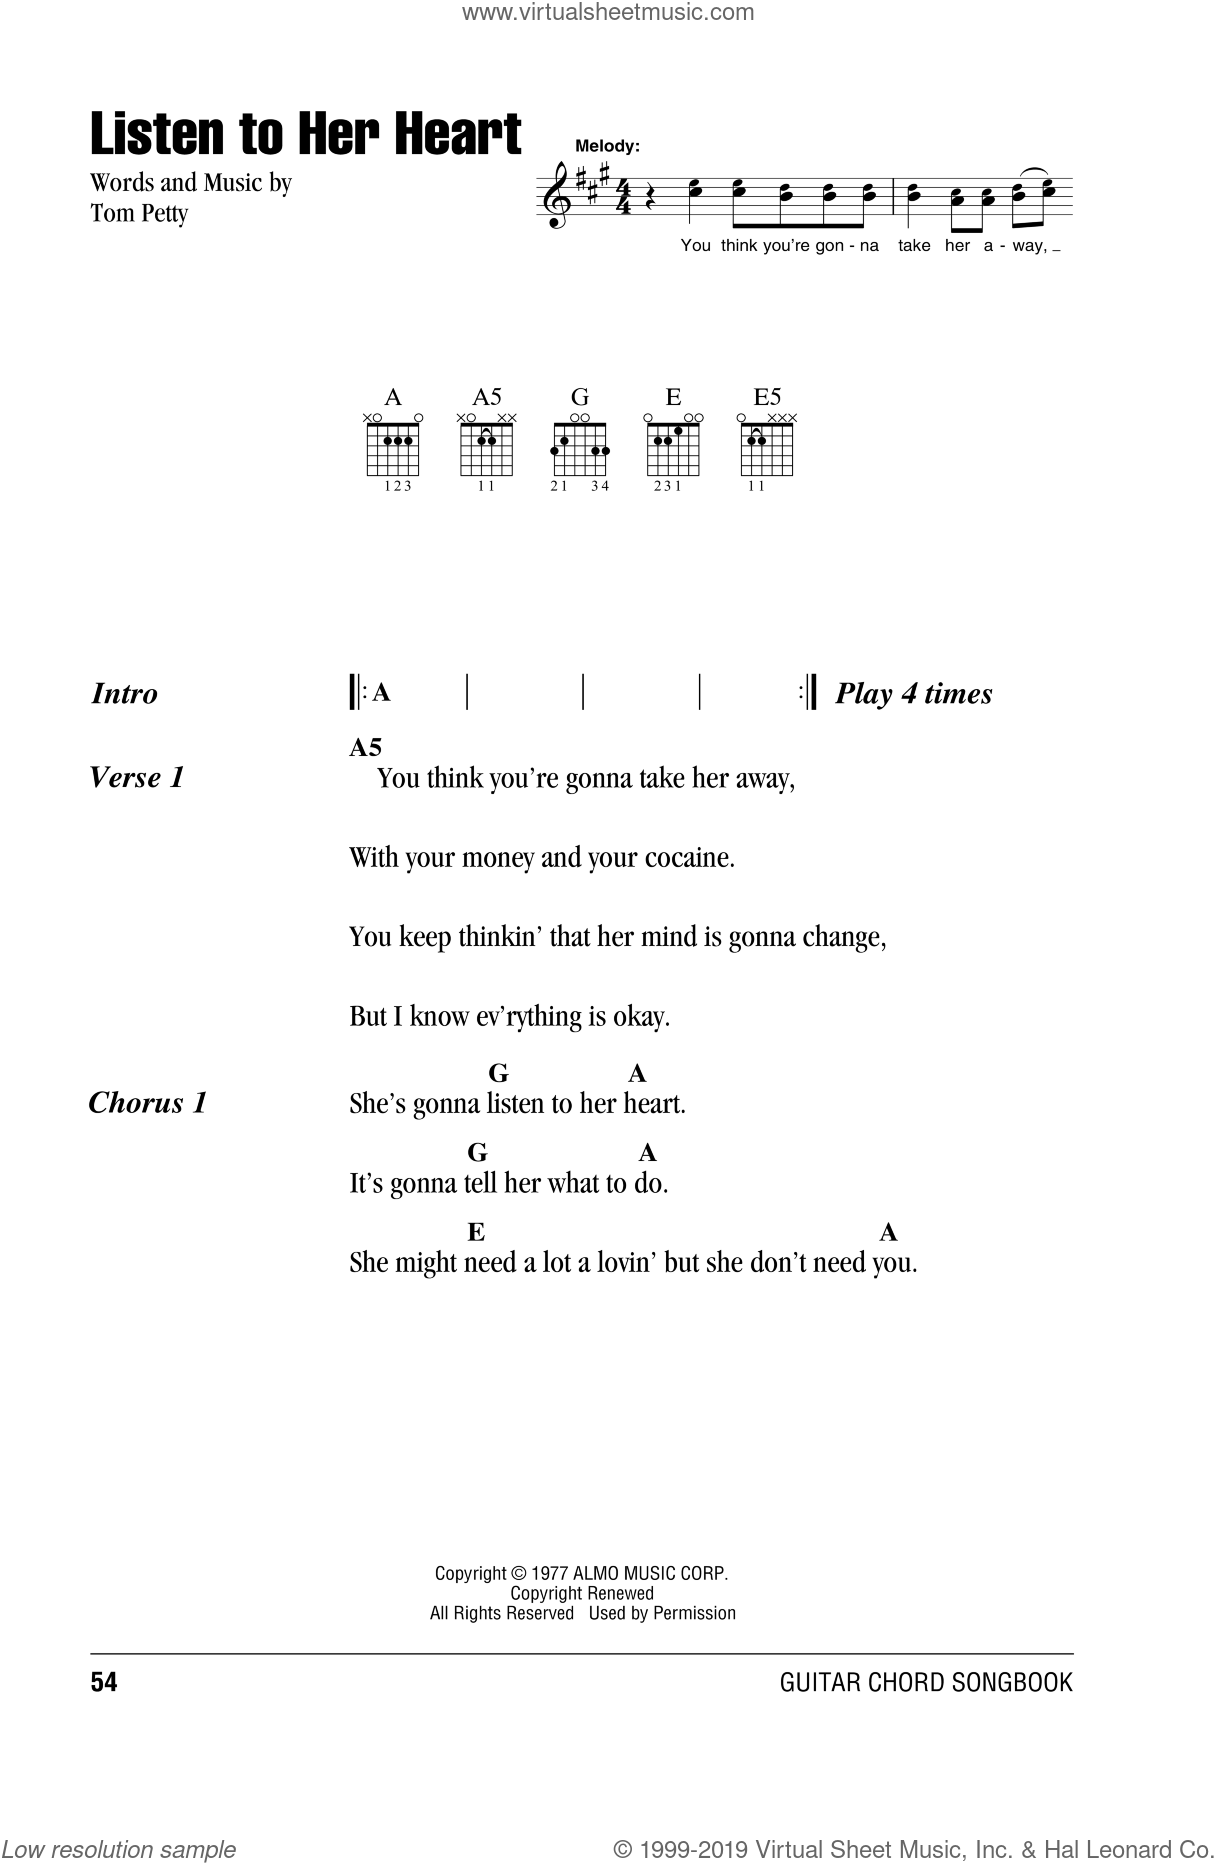 Listen To Her Heart sheet music for guitar (chords) by Tom Petty And The Heartbreakers and Tom Petty, intermediate skill level